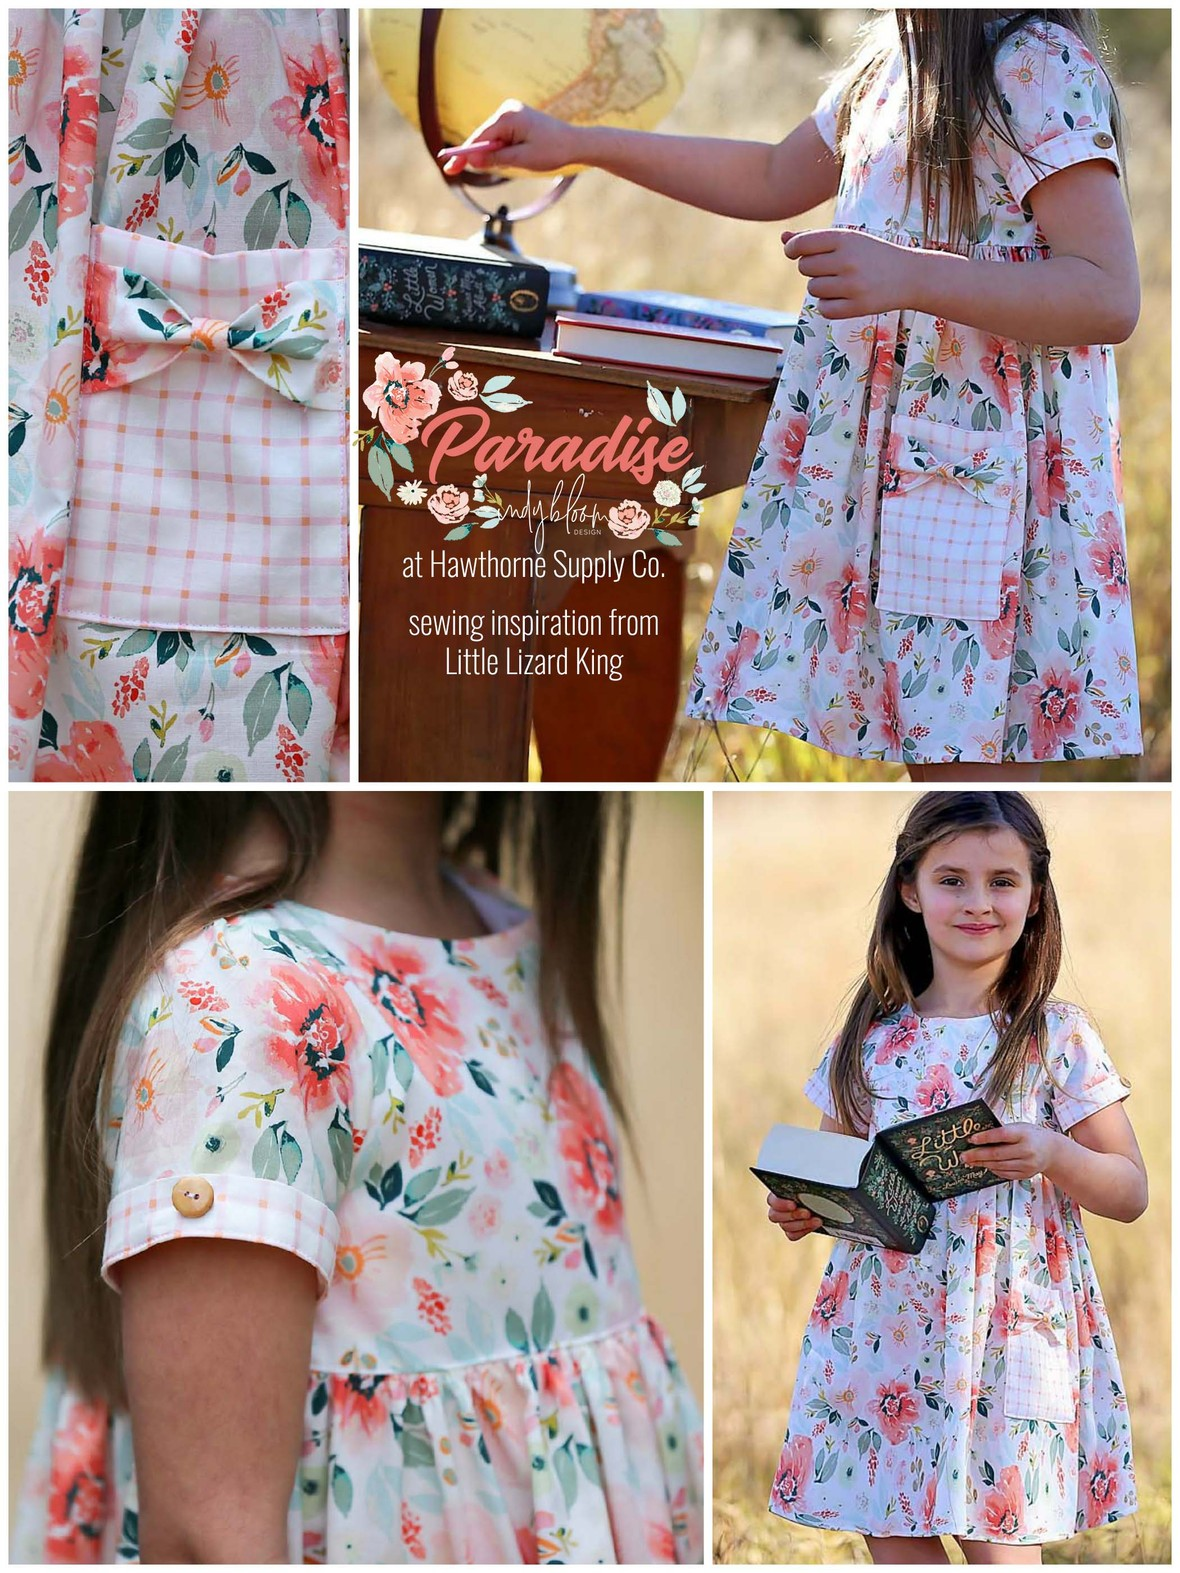 Paradise Fabric from Indy Bloom at Hawthorne Supply Co LLK Melbourne Dress by Natasha Chrismas